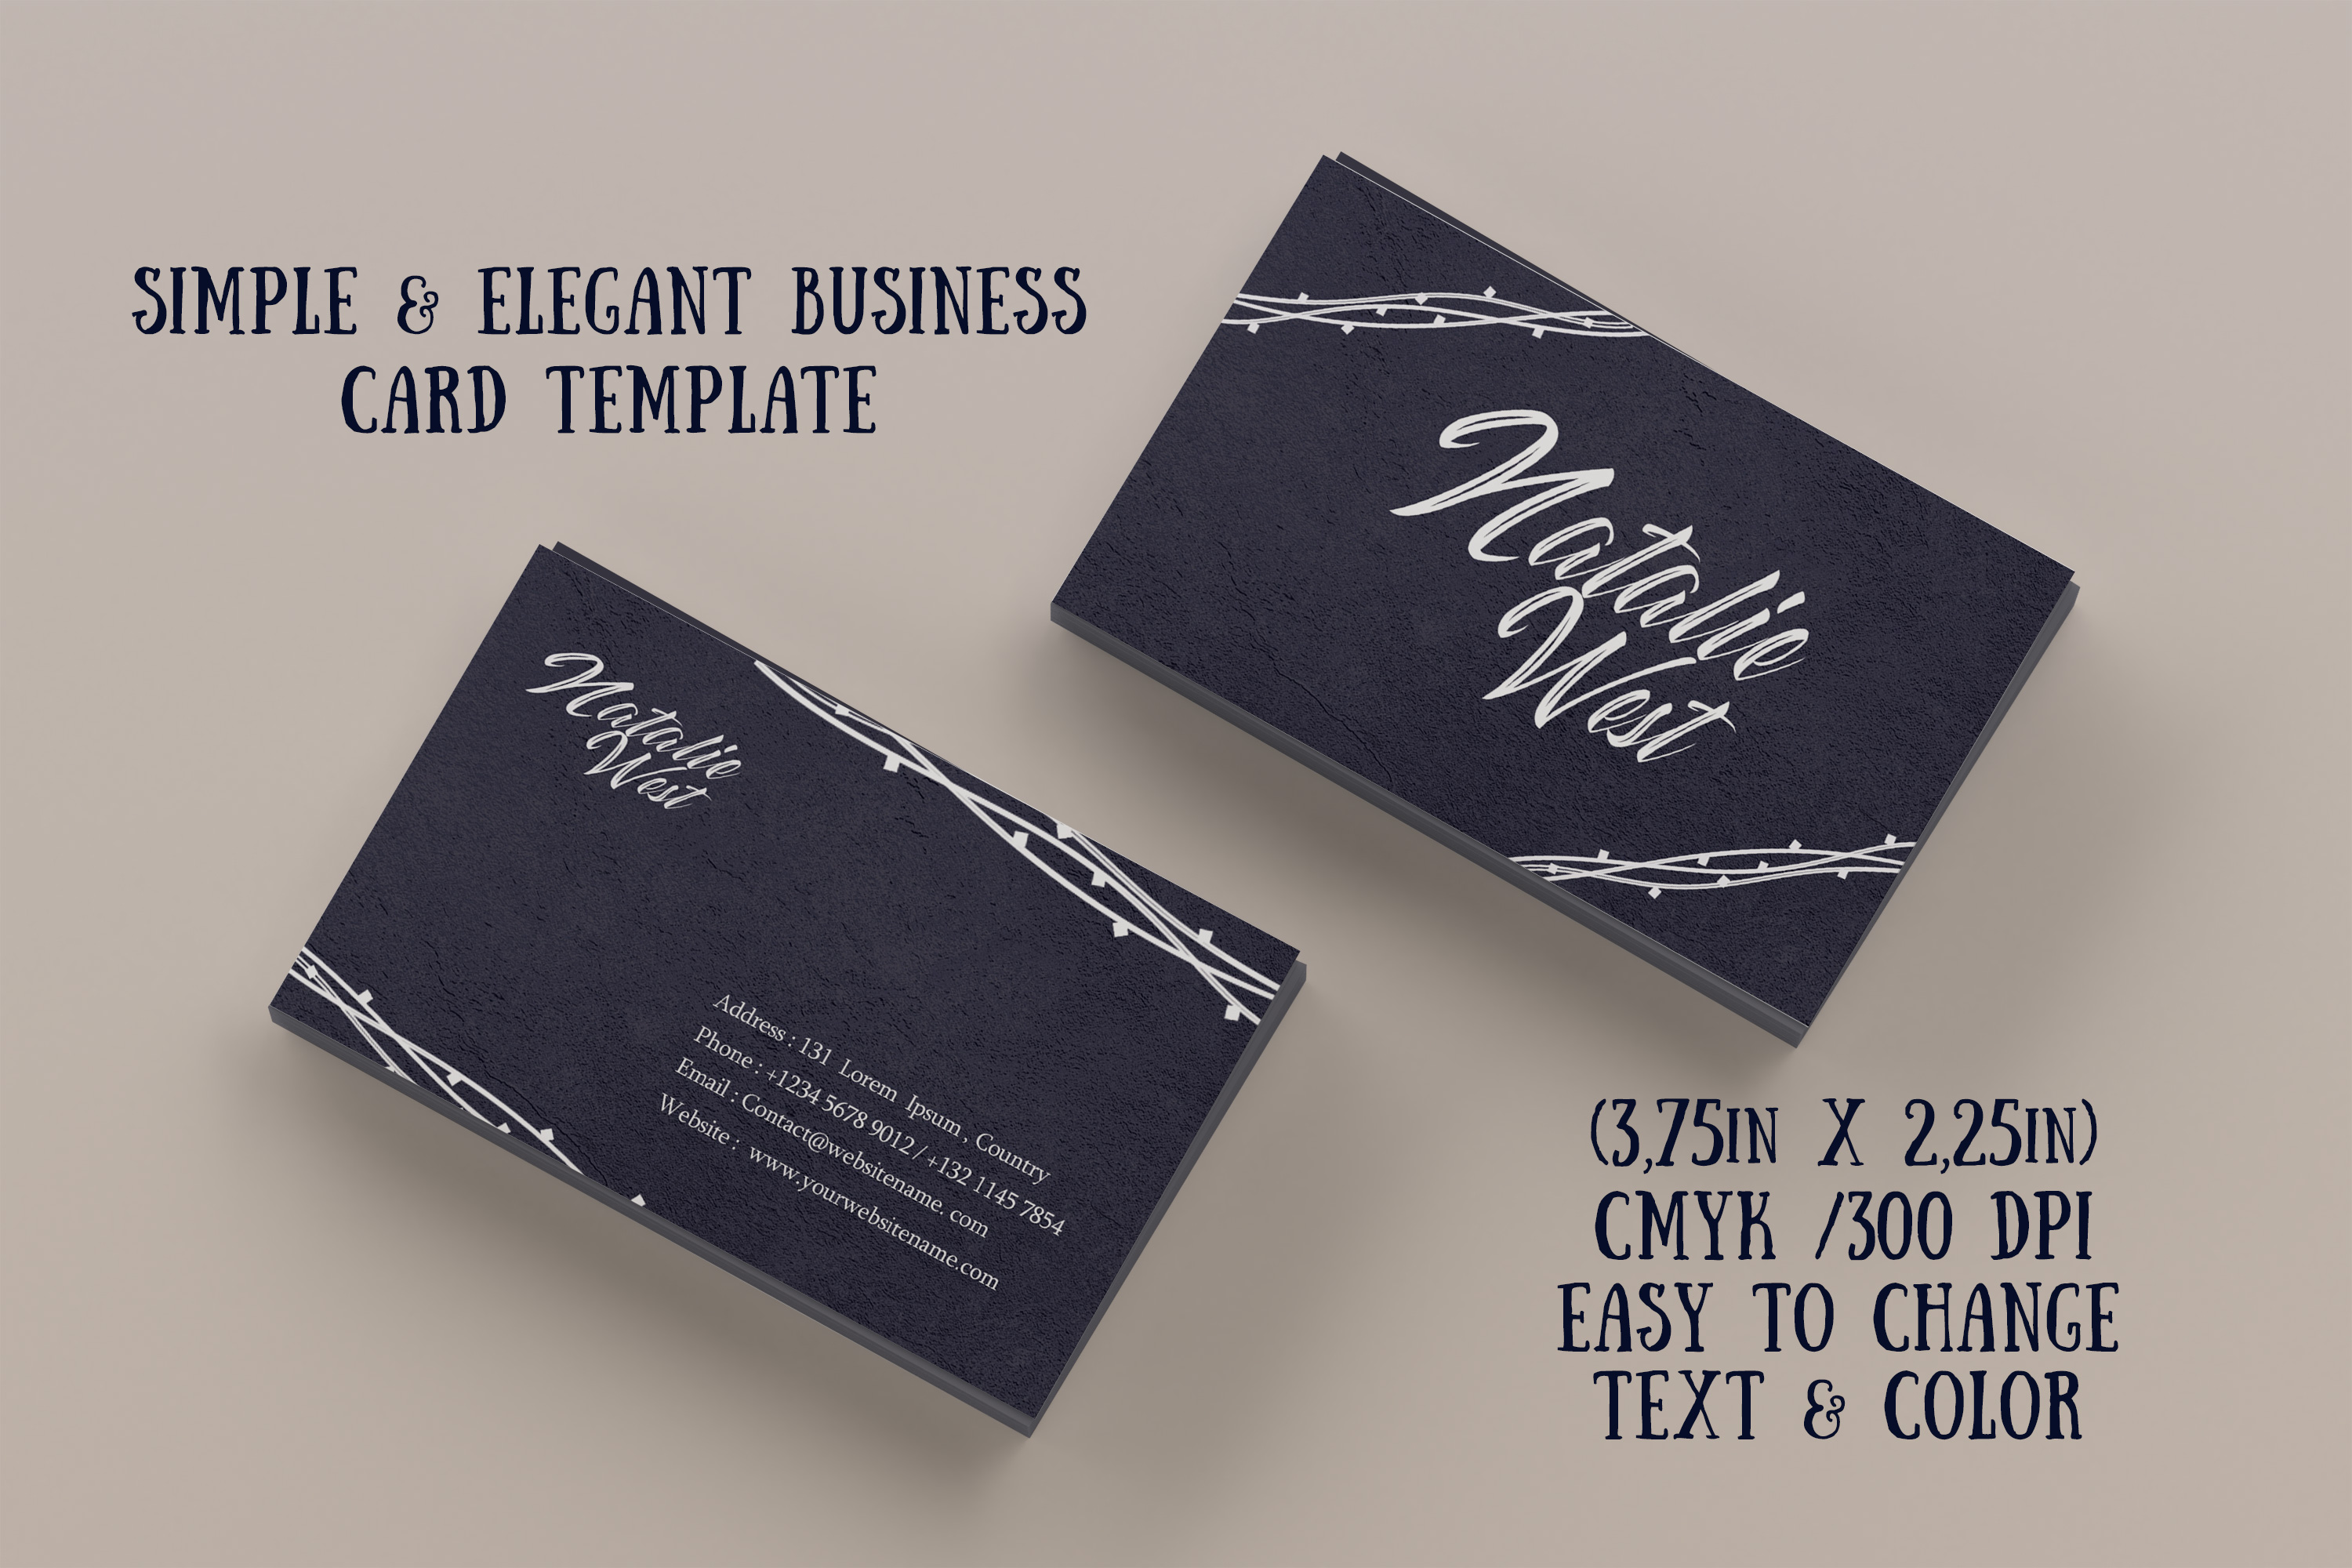 Elegant business card template example image 1